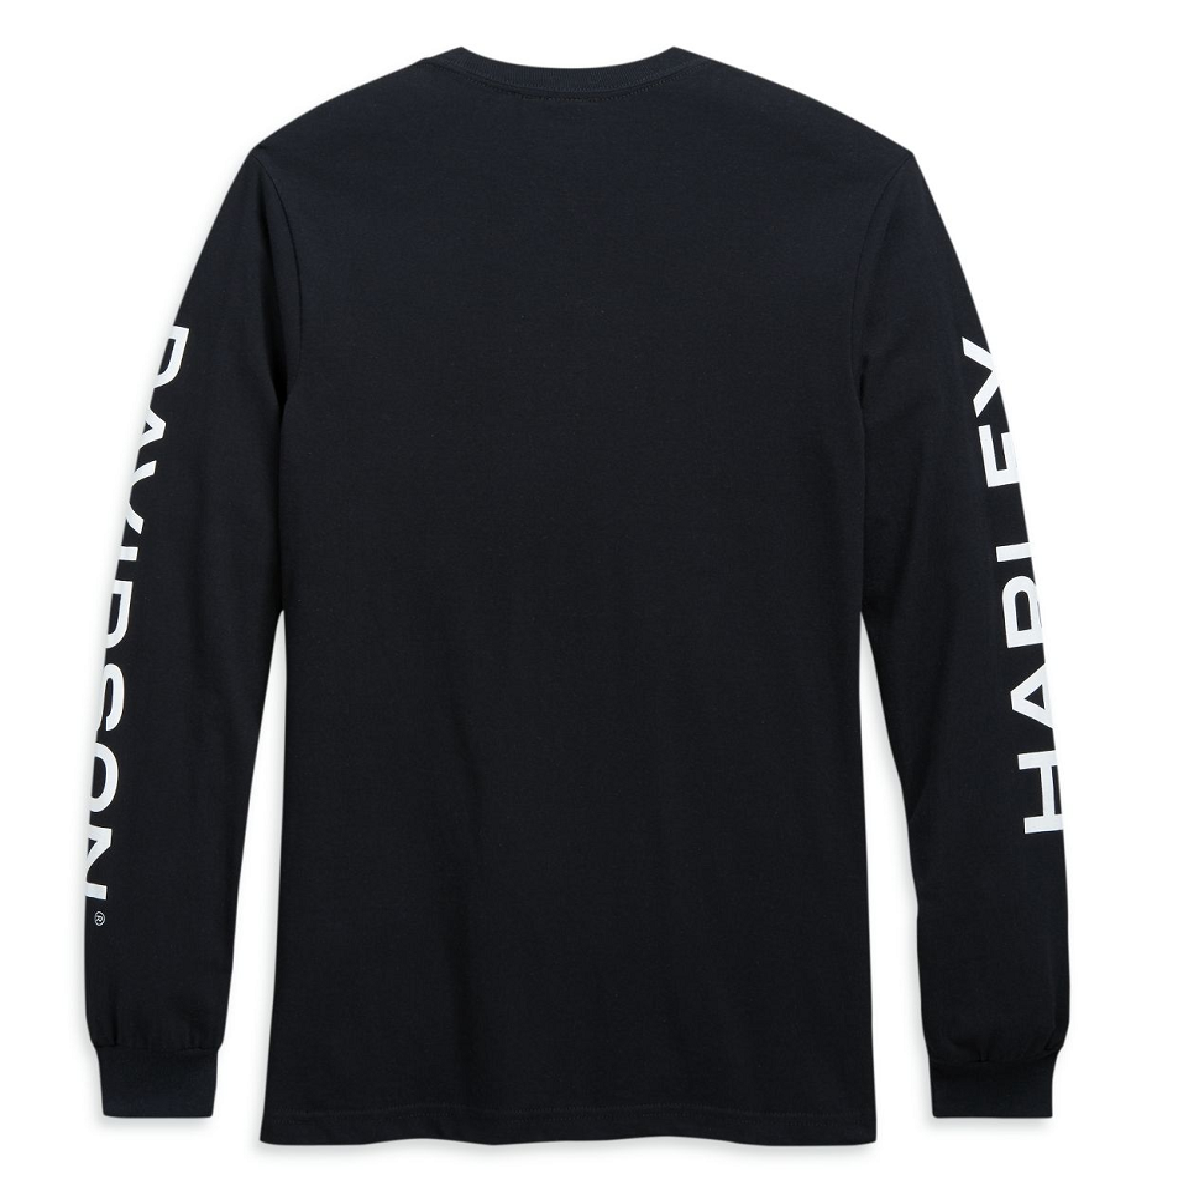 Hyphen Crew Long Sleeve Tee